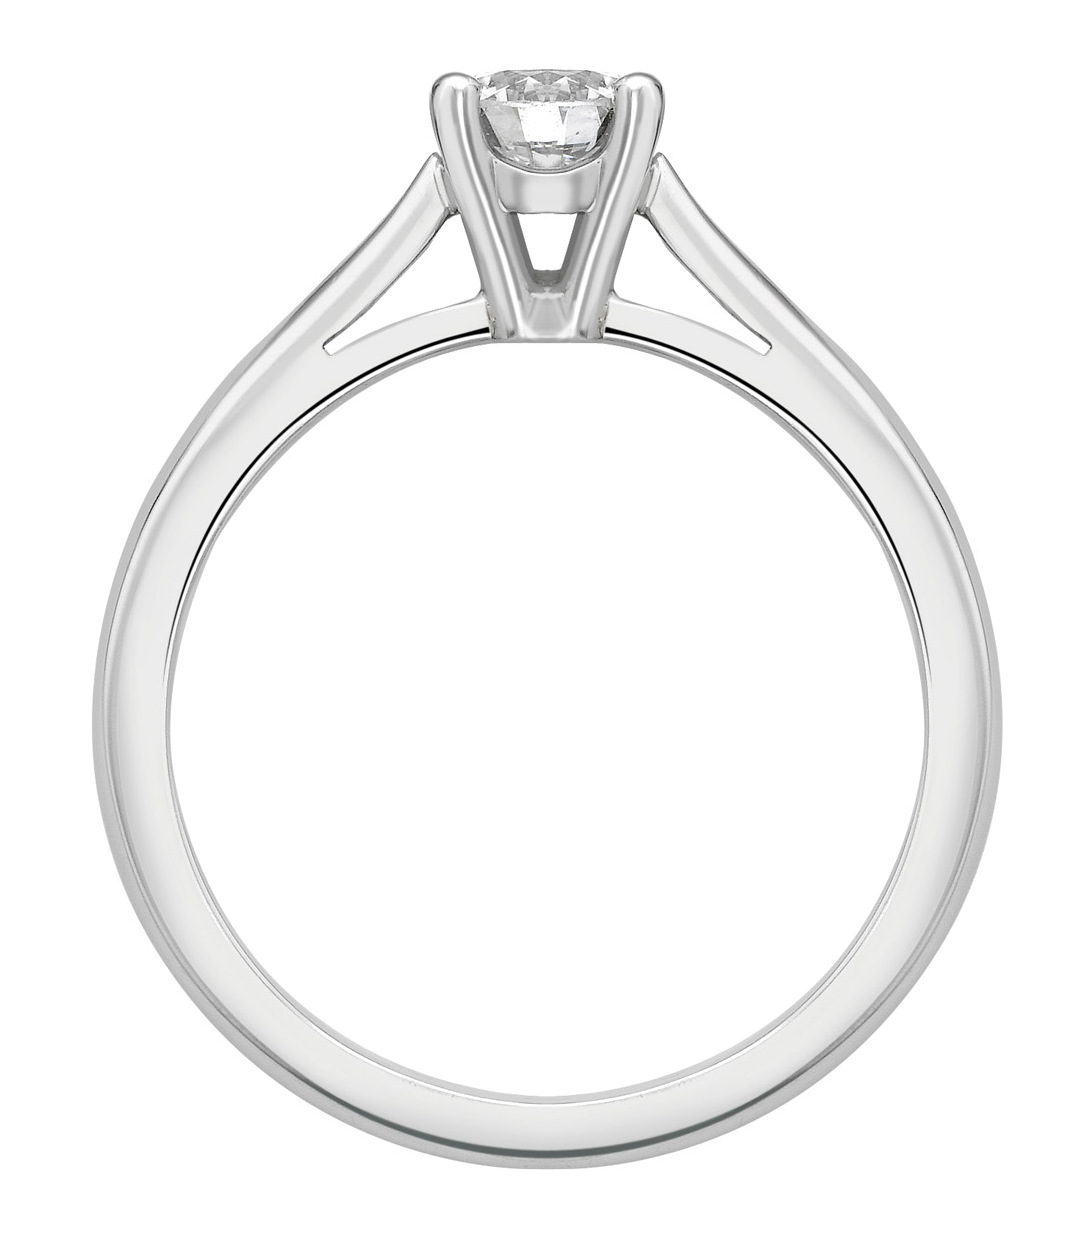 Round 4 Claw Platinum Engagement Ring GRC650PLT Image 2